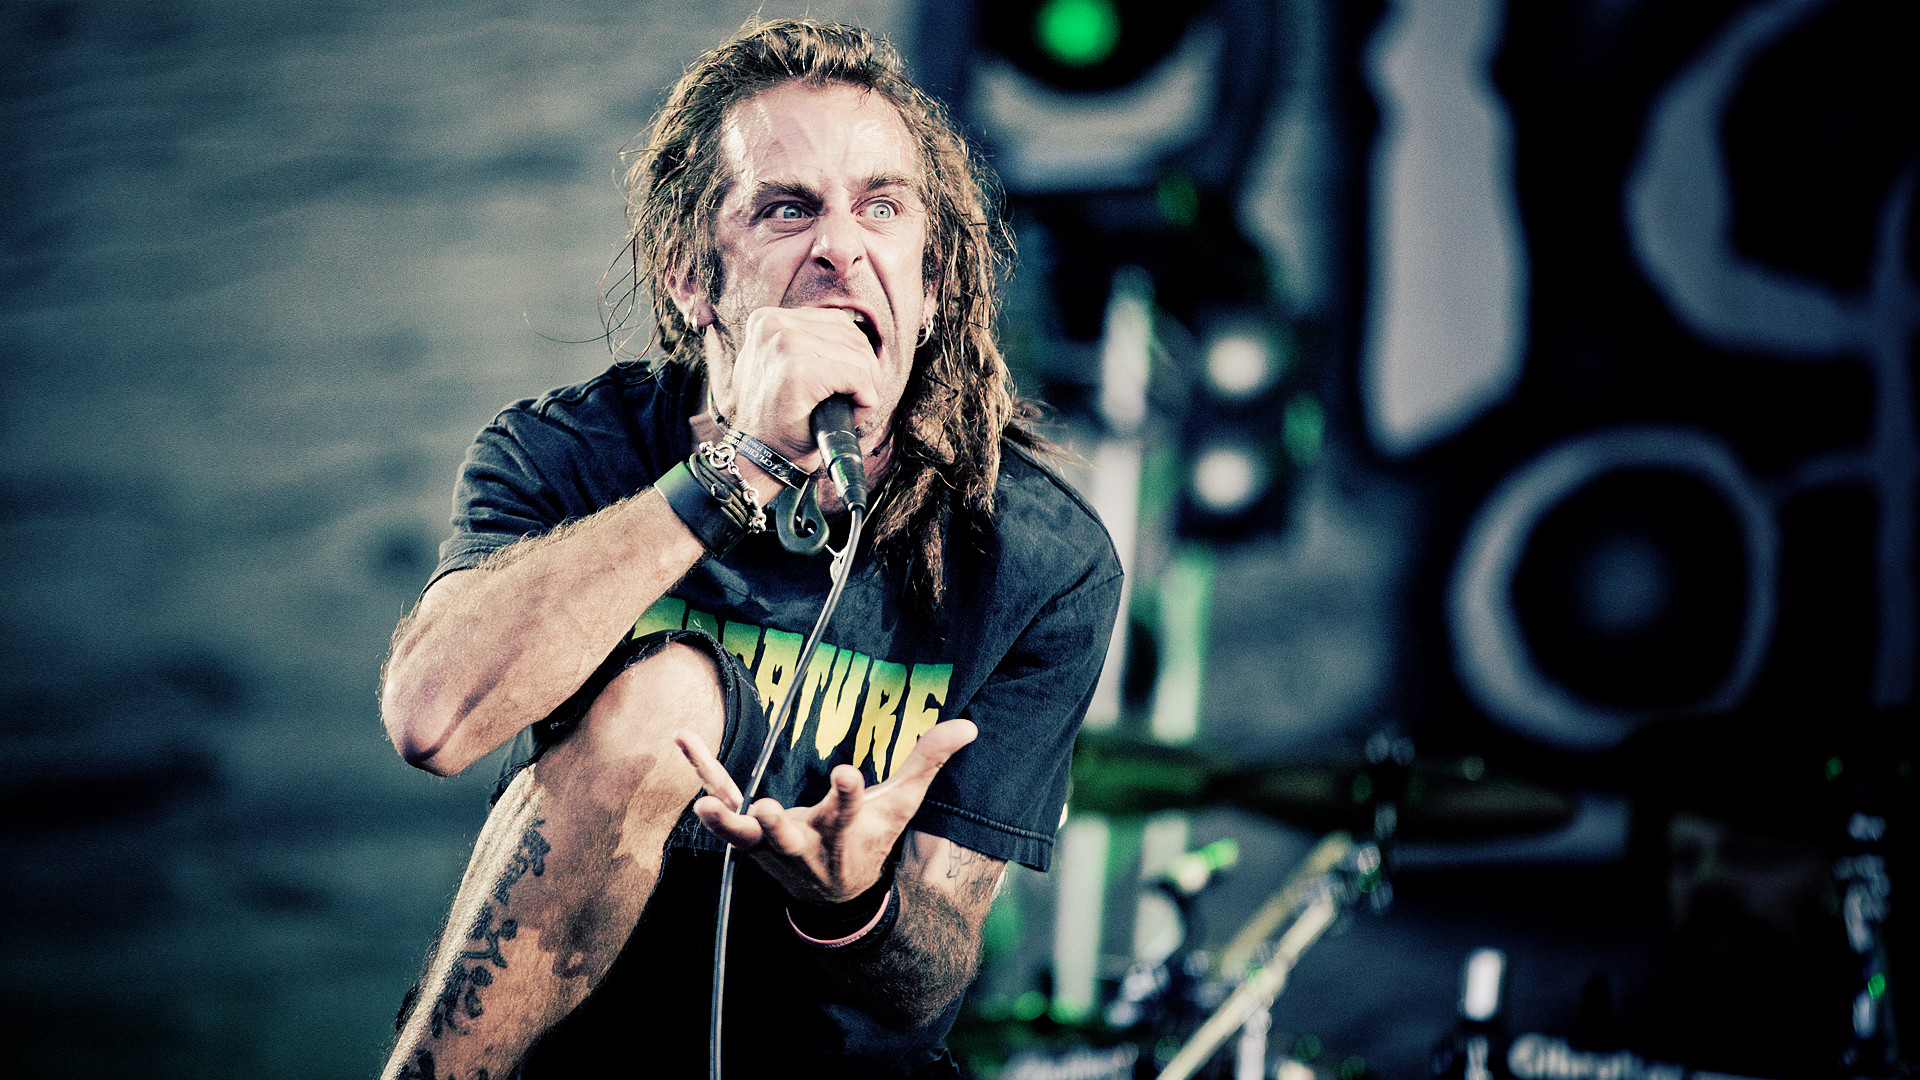 Lamb Of God S Randy Blythe Weighs In On Manchester - Lamb Of God Hd - HD Wallpaper